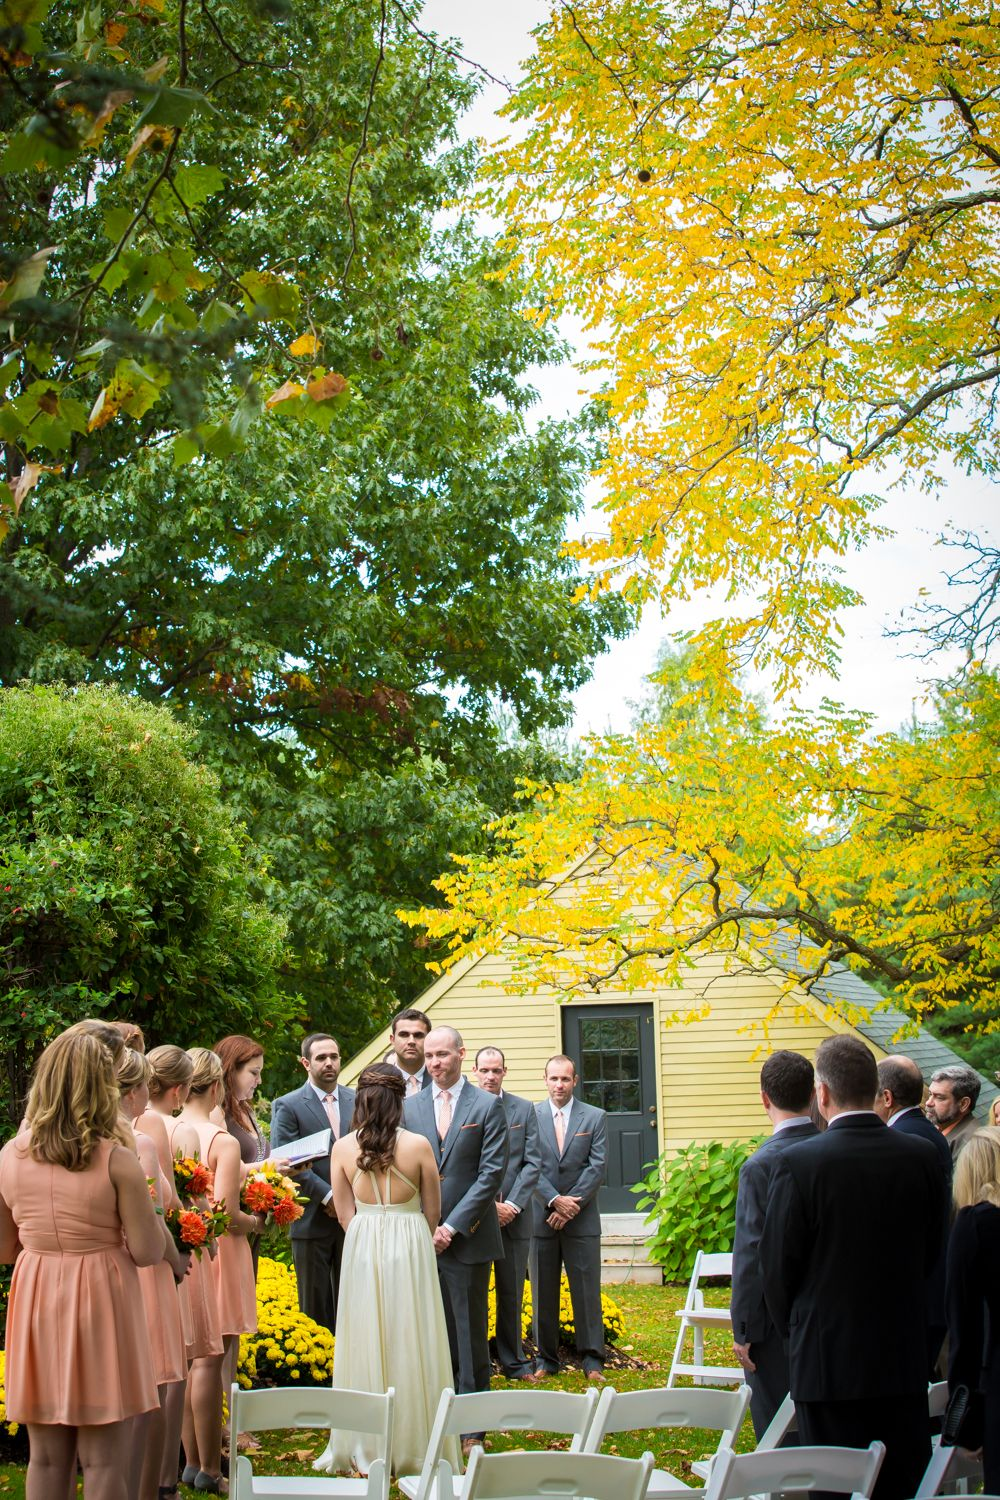 Wedding Day Vows At Crossing Vineyards Winery In Newtown Pa Juliana Laury Photography Philadelphia Bucks County